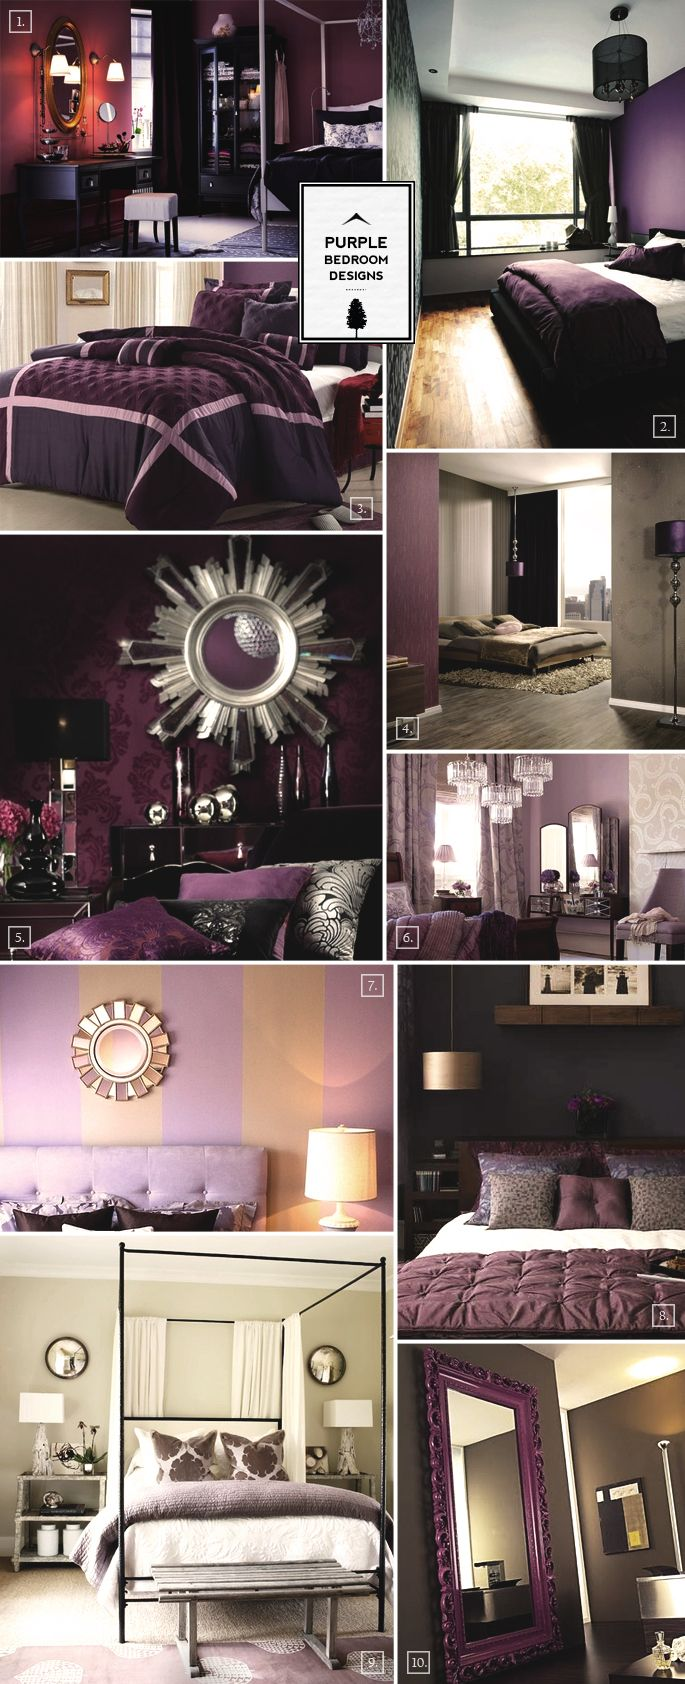 Purple Bedroom Designs: Inspiration Mood Board | home ...